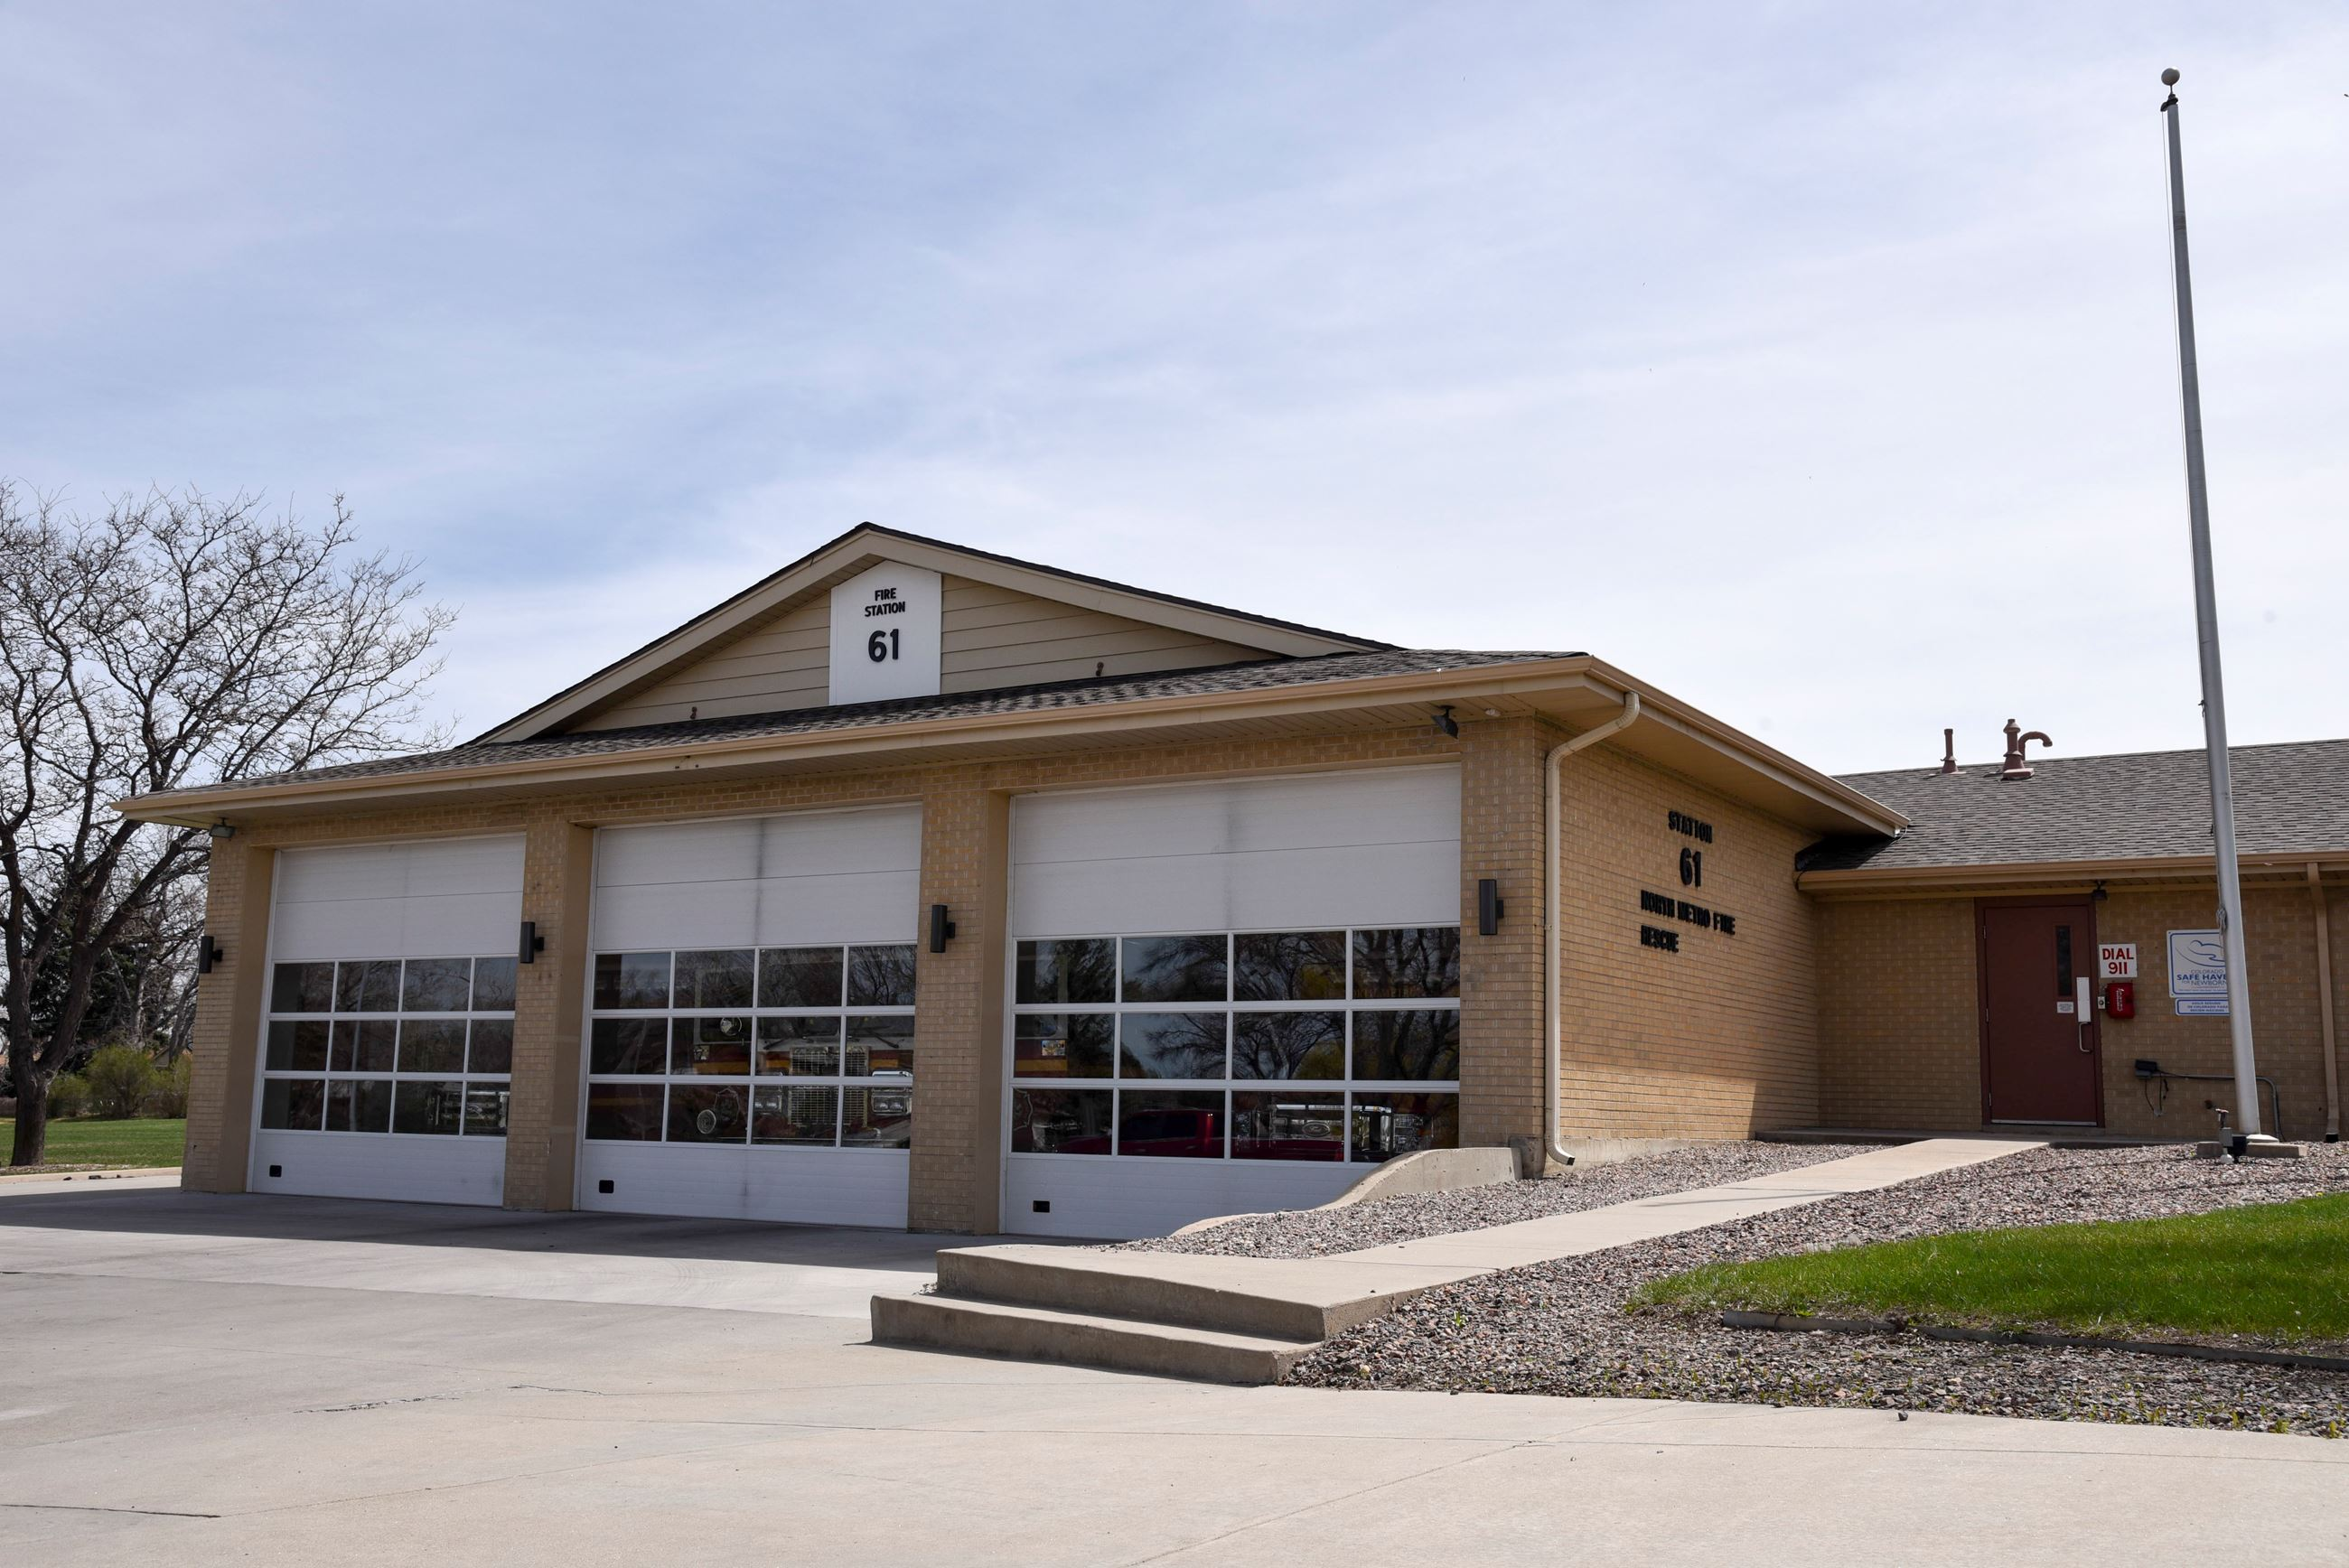 North Metro Fire Station 61